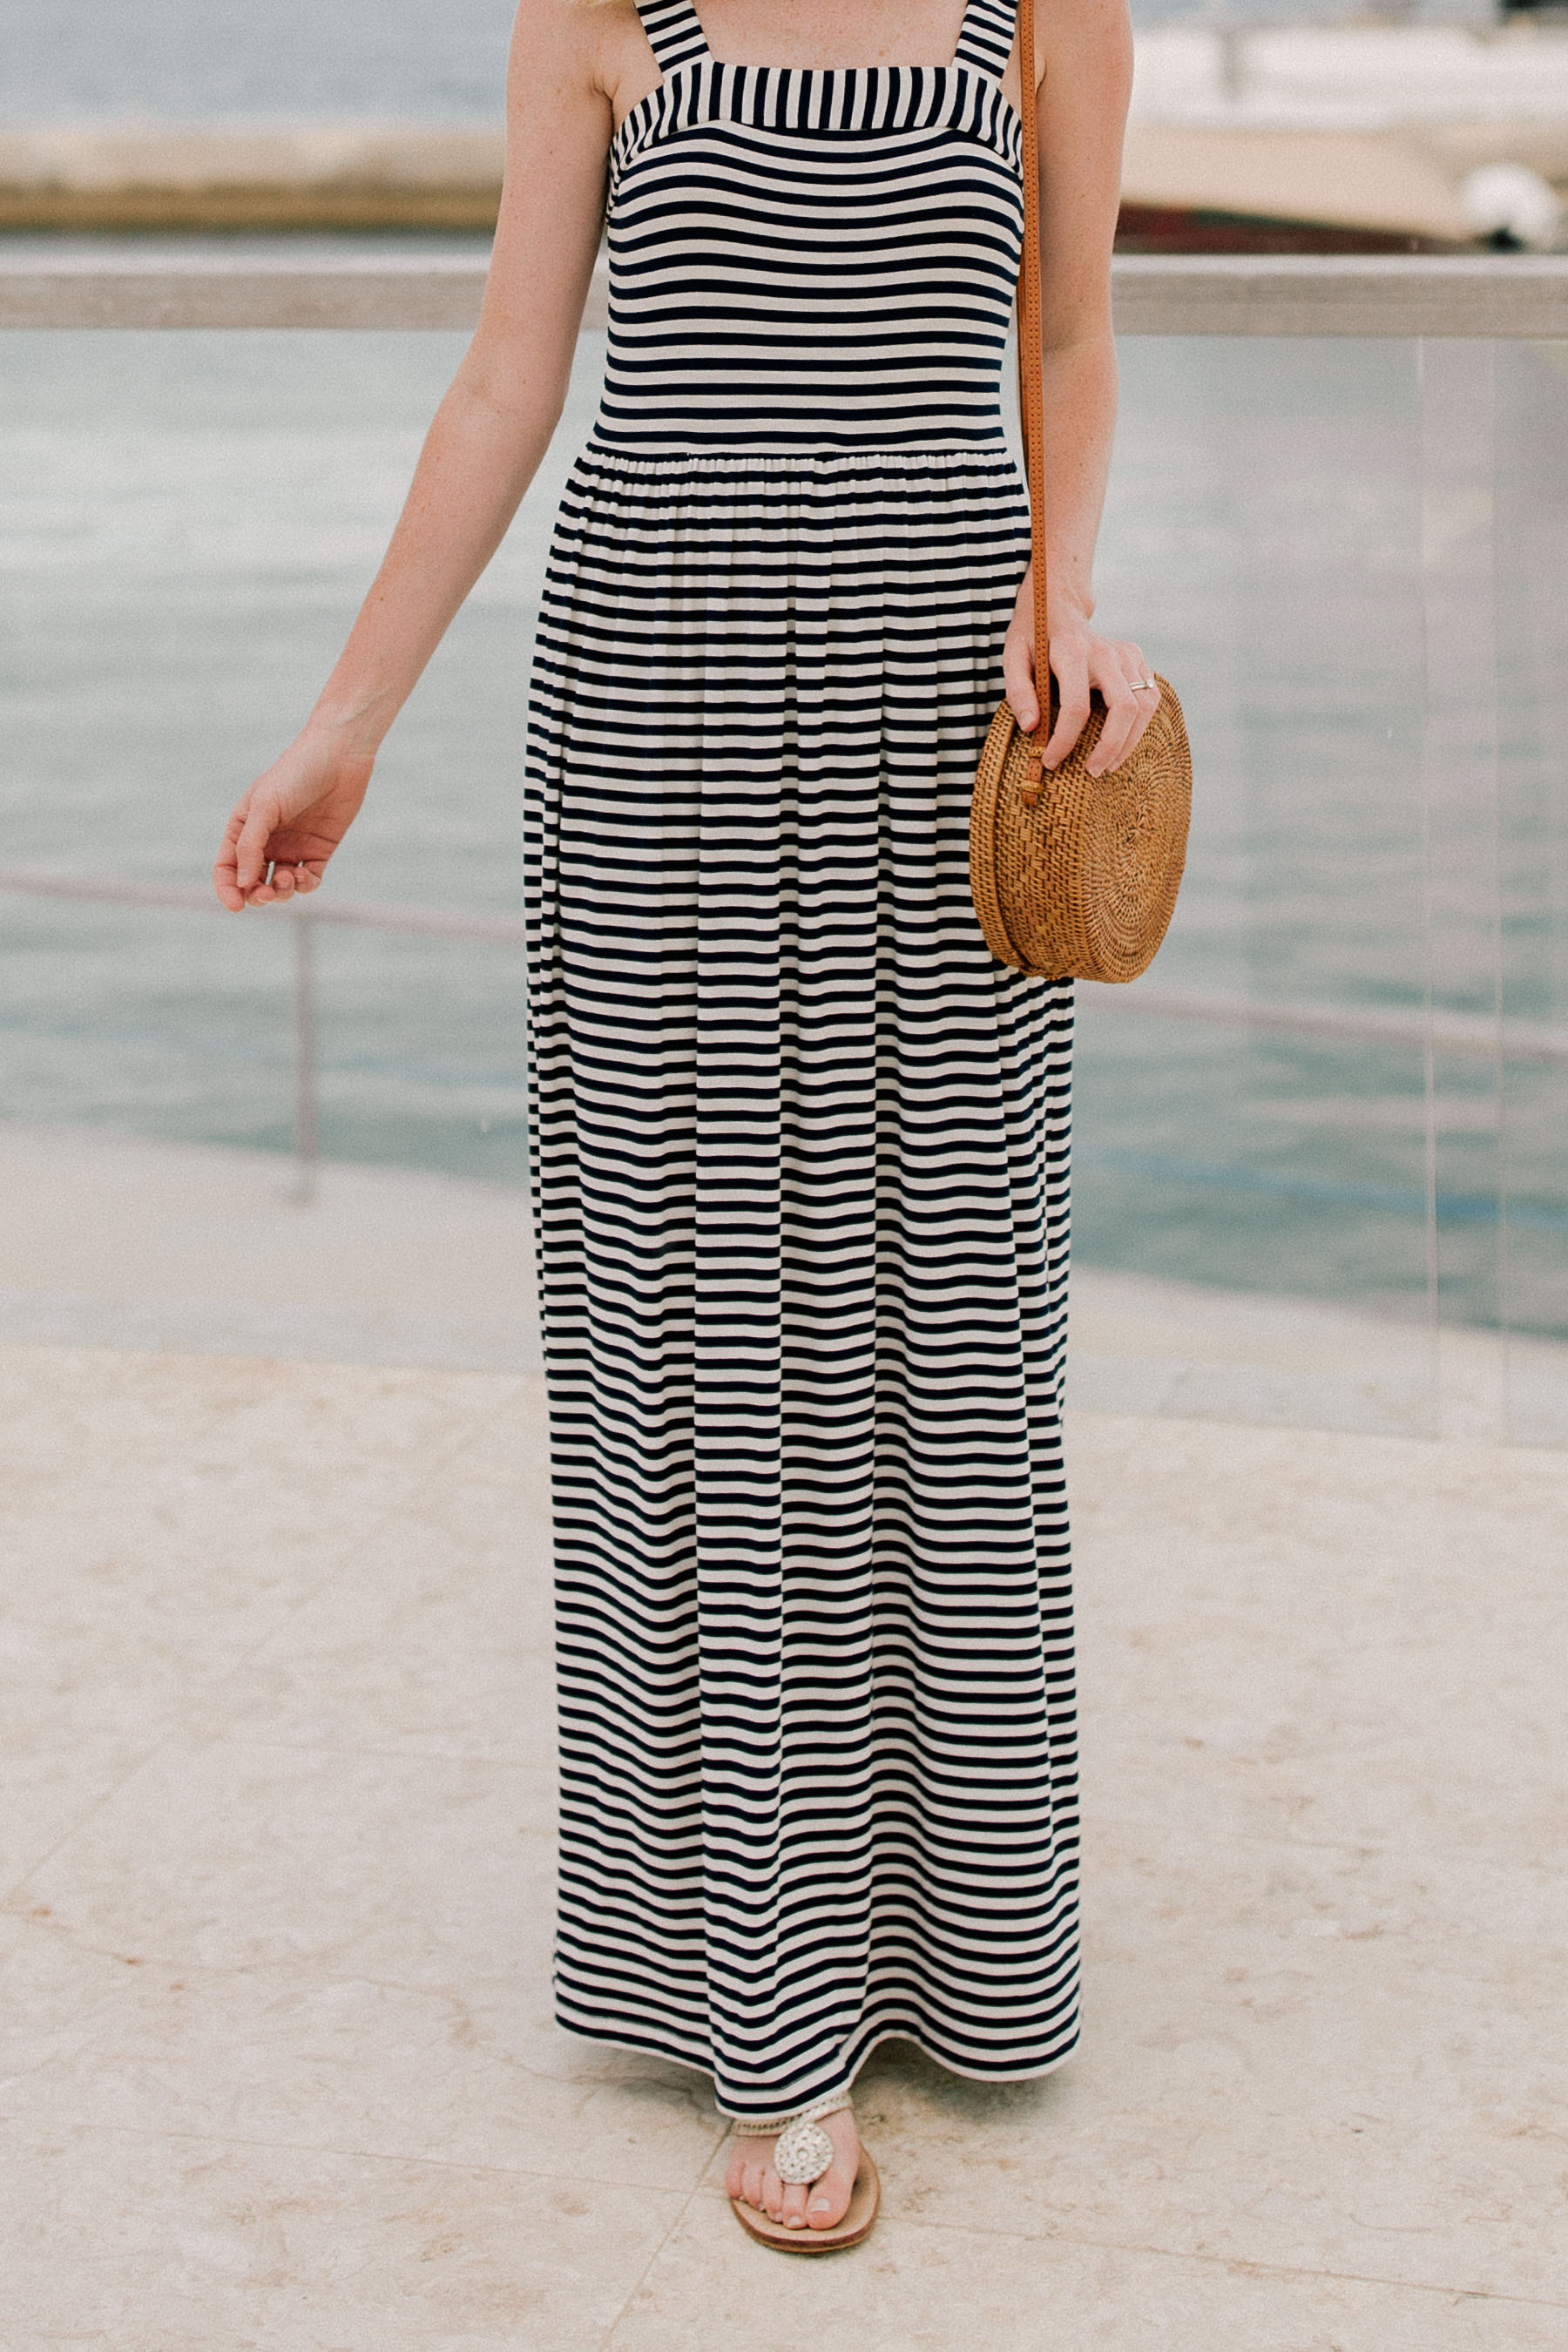 Kelly is wearing a Navy Striped Maxi Dress of Loft and a wove bag